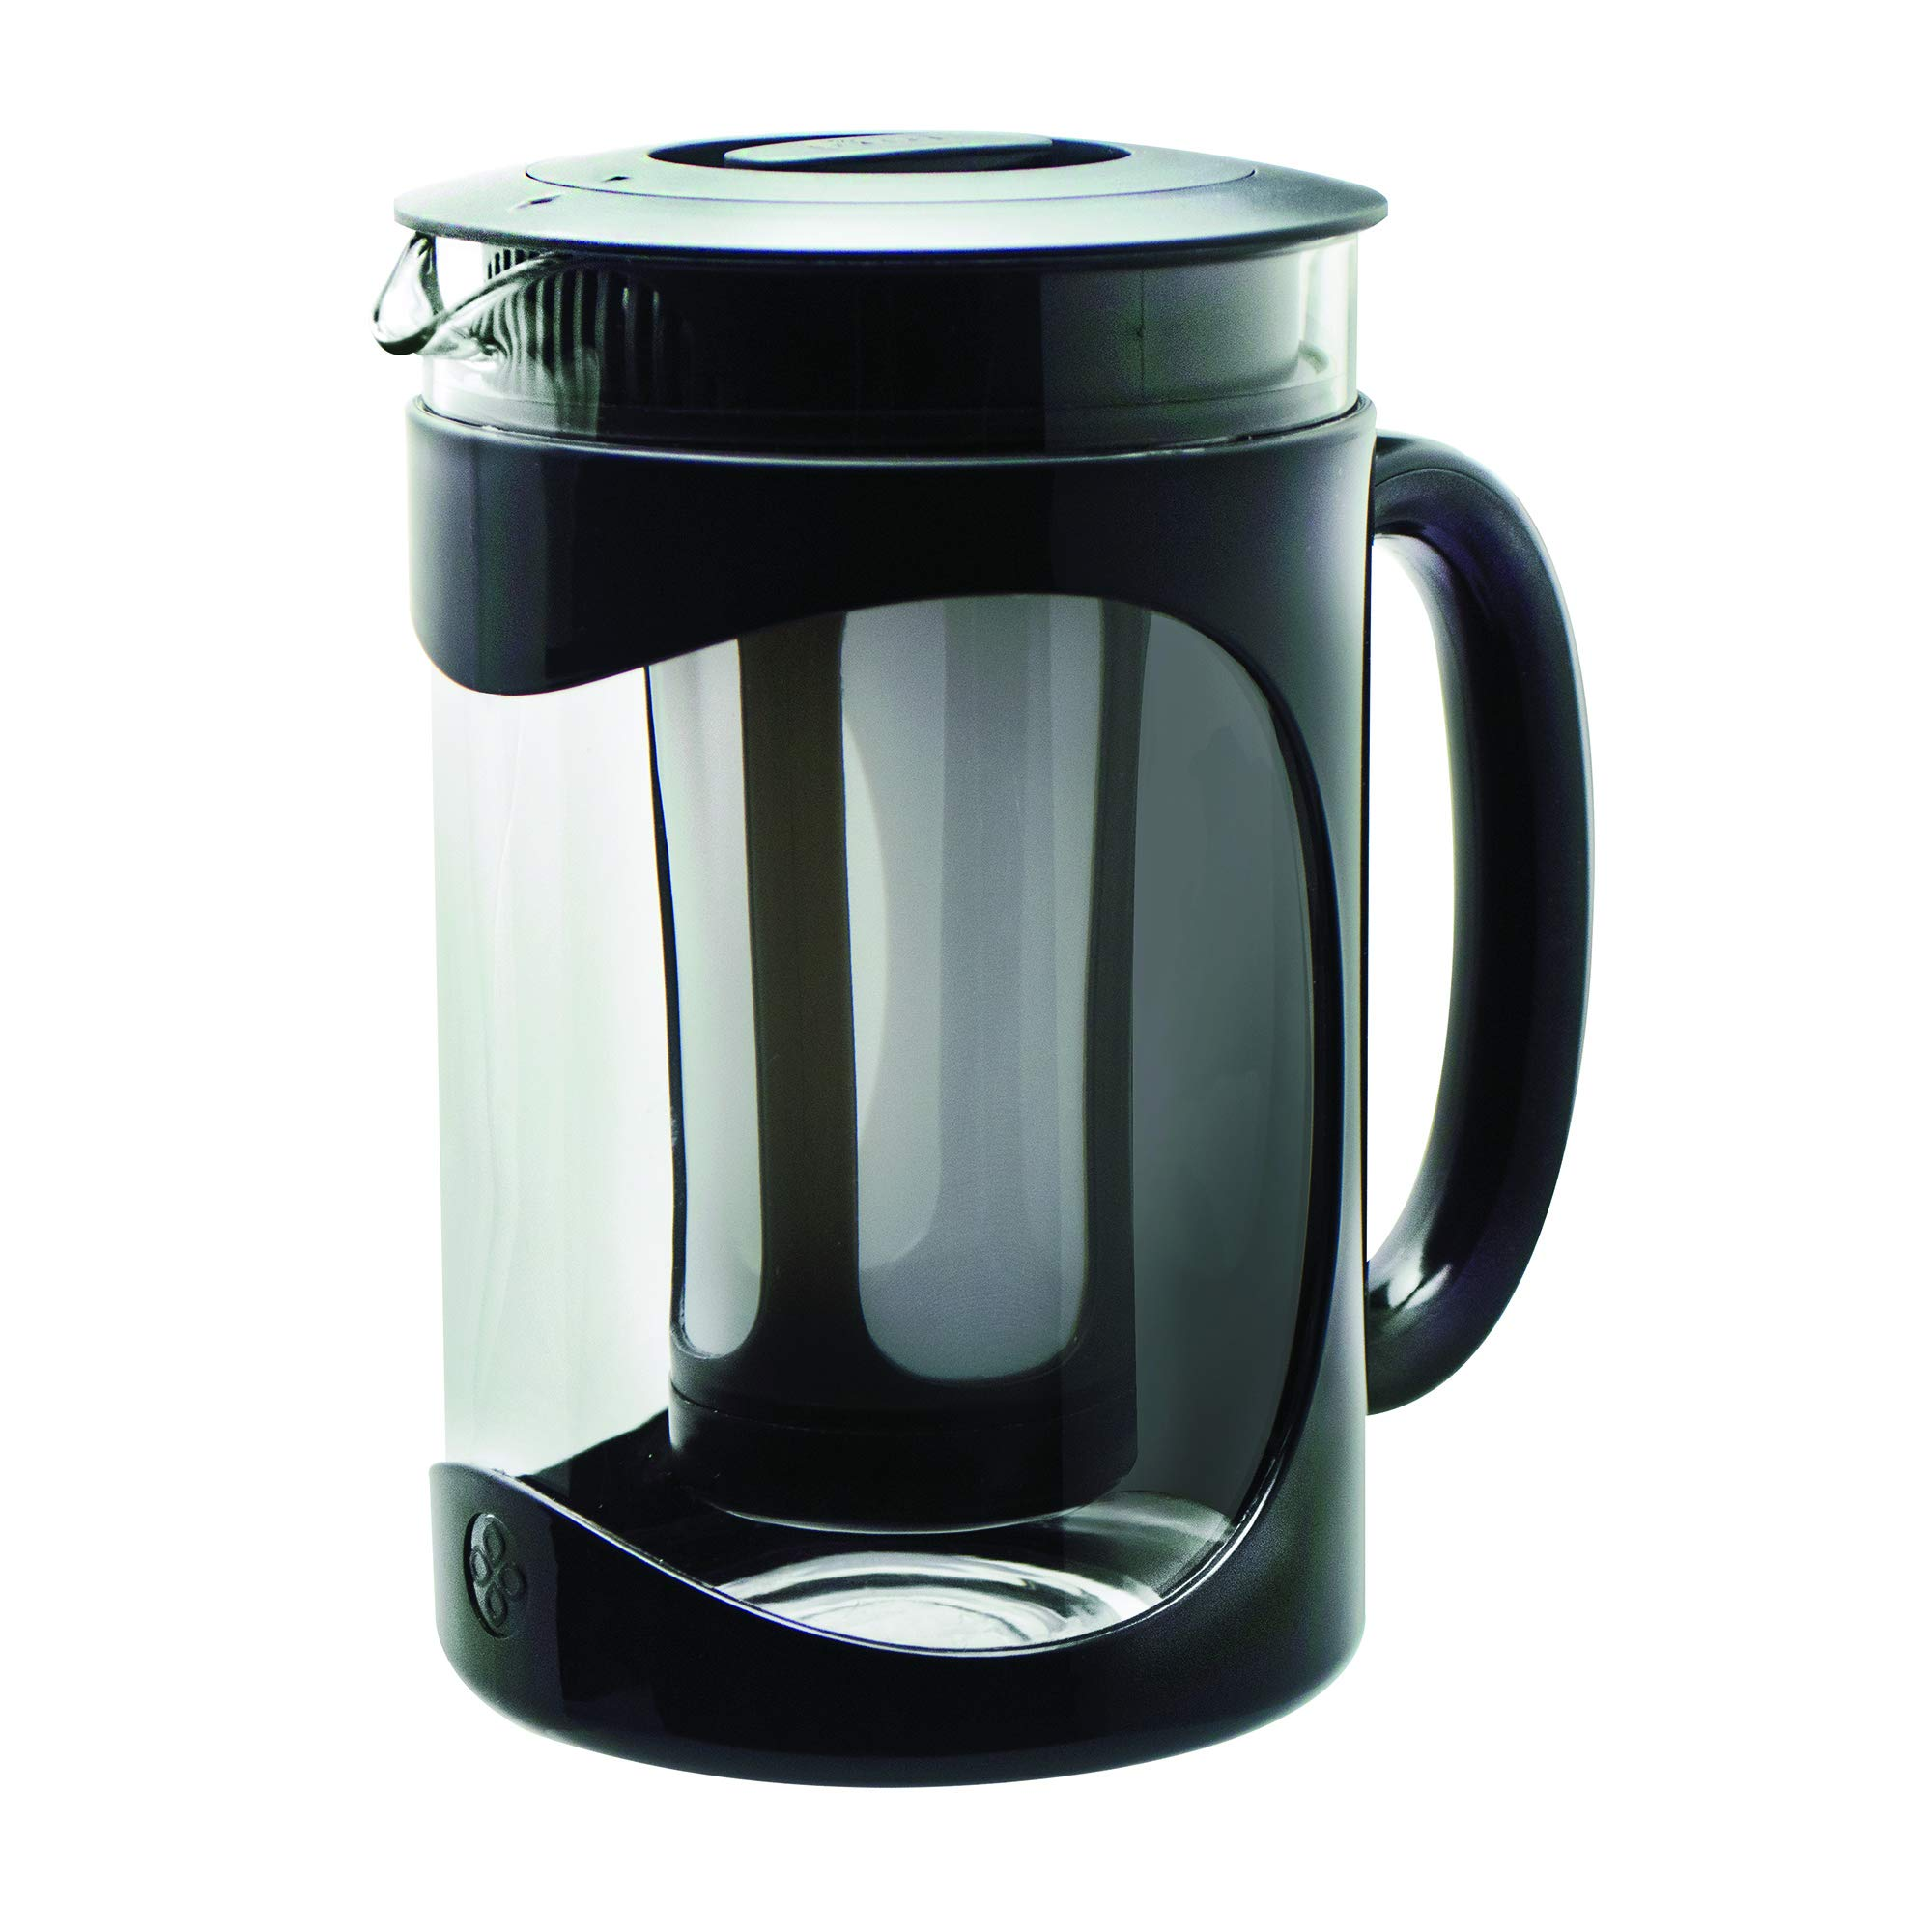 Primula PBPBK-5101 Burke Deluxe Cold Brew Iced Coffee Maker, Comfort Grip Handle, Durable Glass Carafe, Removable Mesh Filter, Perfect 6 Cup Size, Dishwasher Safe, 1.6 Qt, Black by Primula